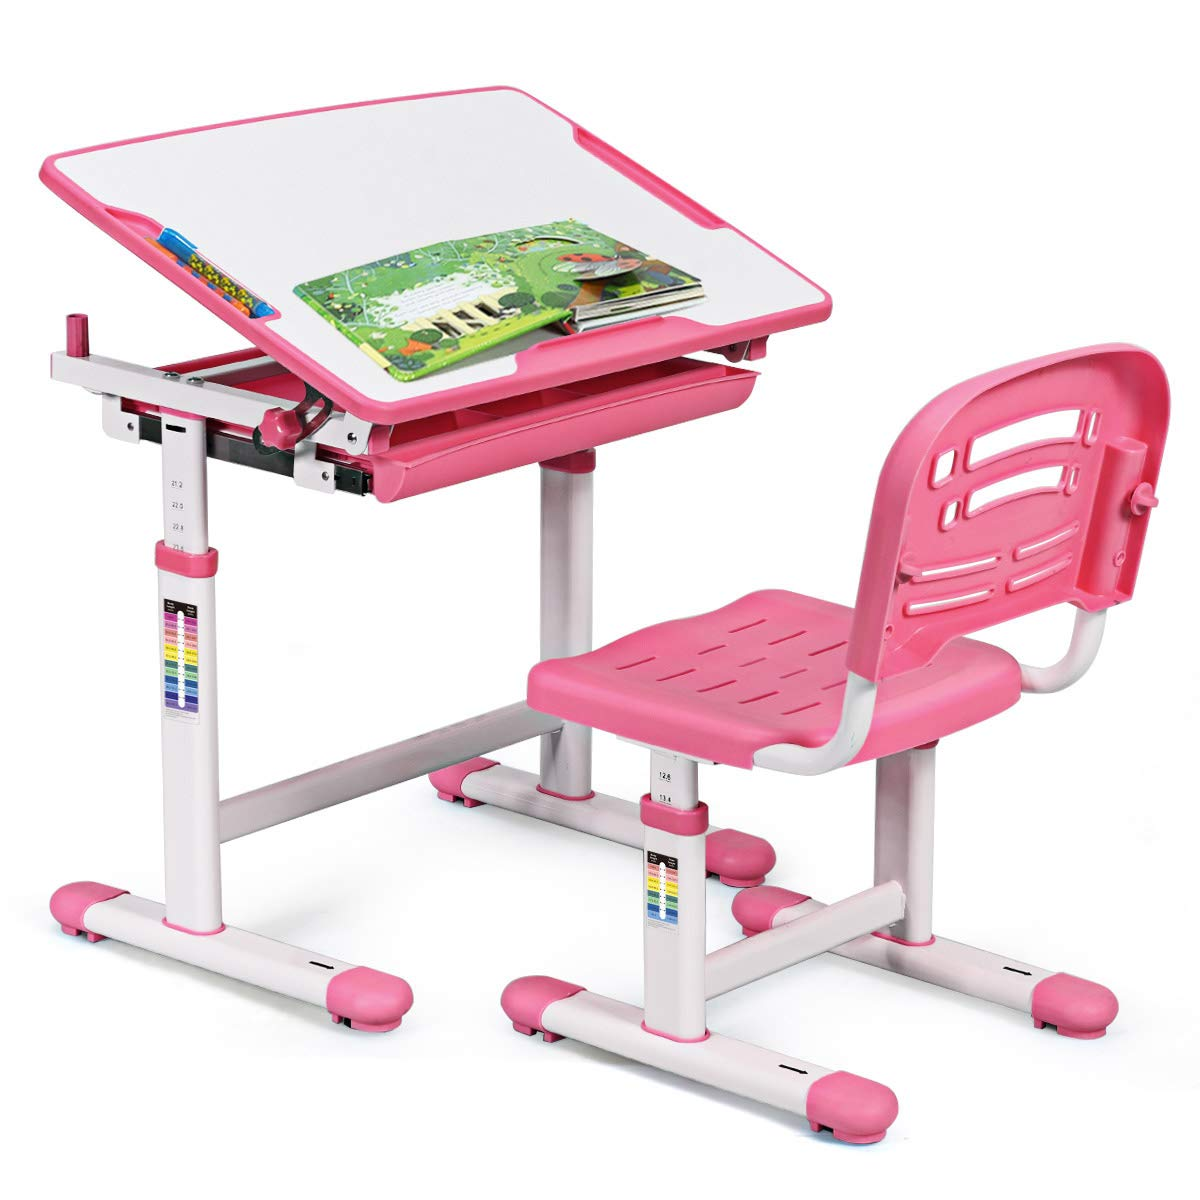 BABY JOY Kids Desk and Chair Set, Height Adjustable, Pull Out Spacious Storage Drawer, Kids Study Table with Tilted Desktop (Pink) by BABY JOY